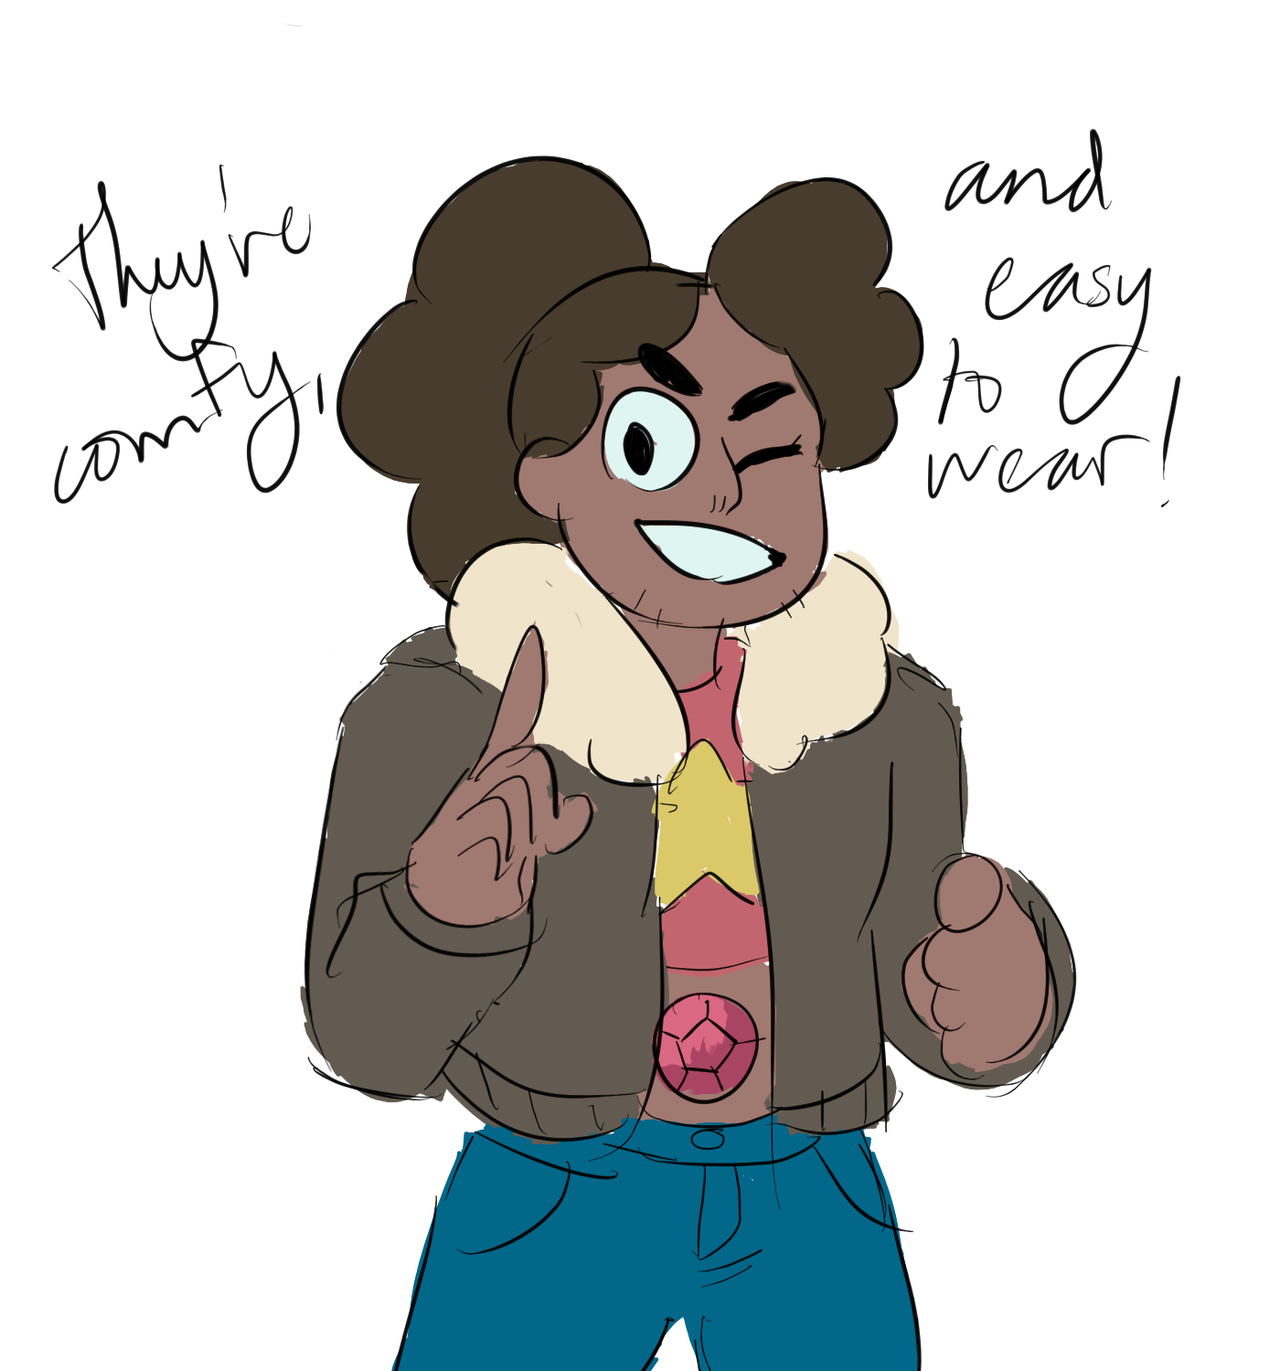 i love and support stevonnie and their jorts